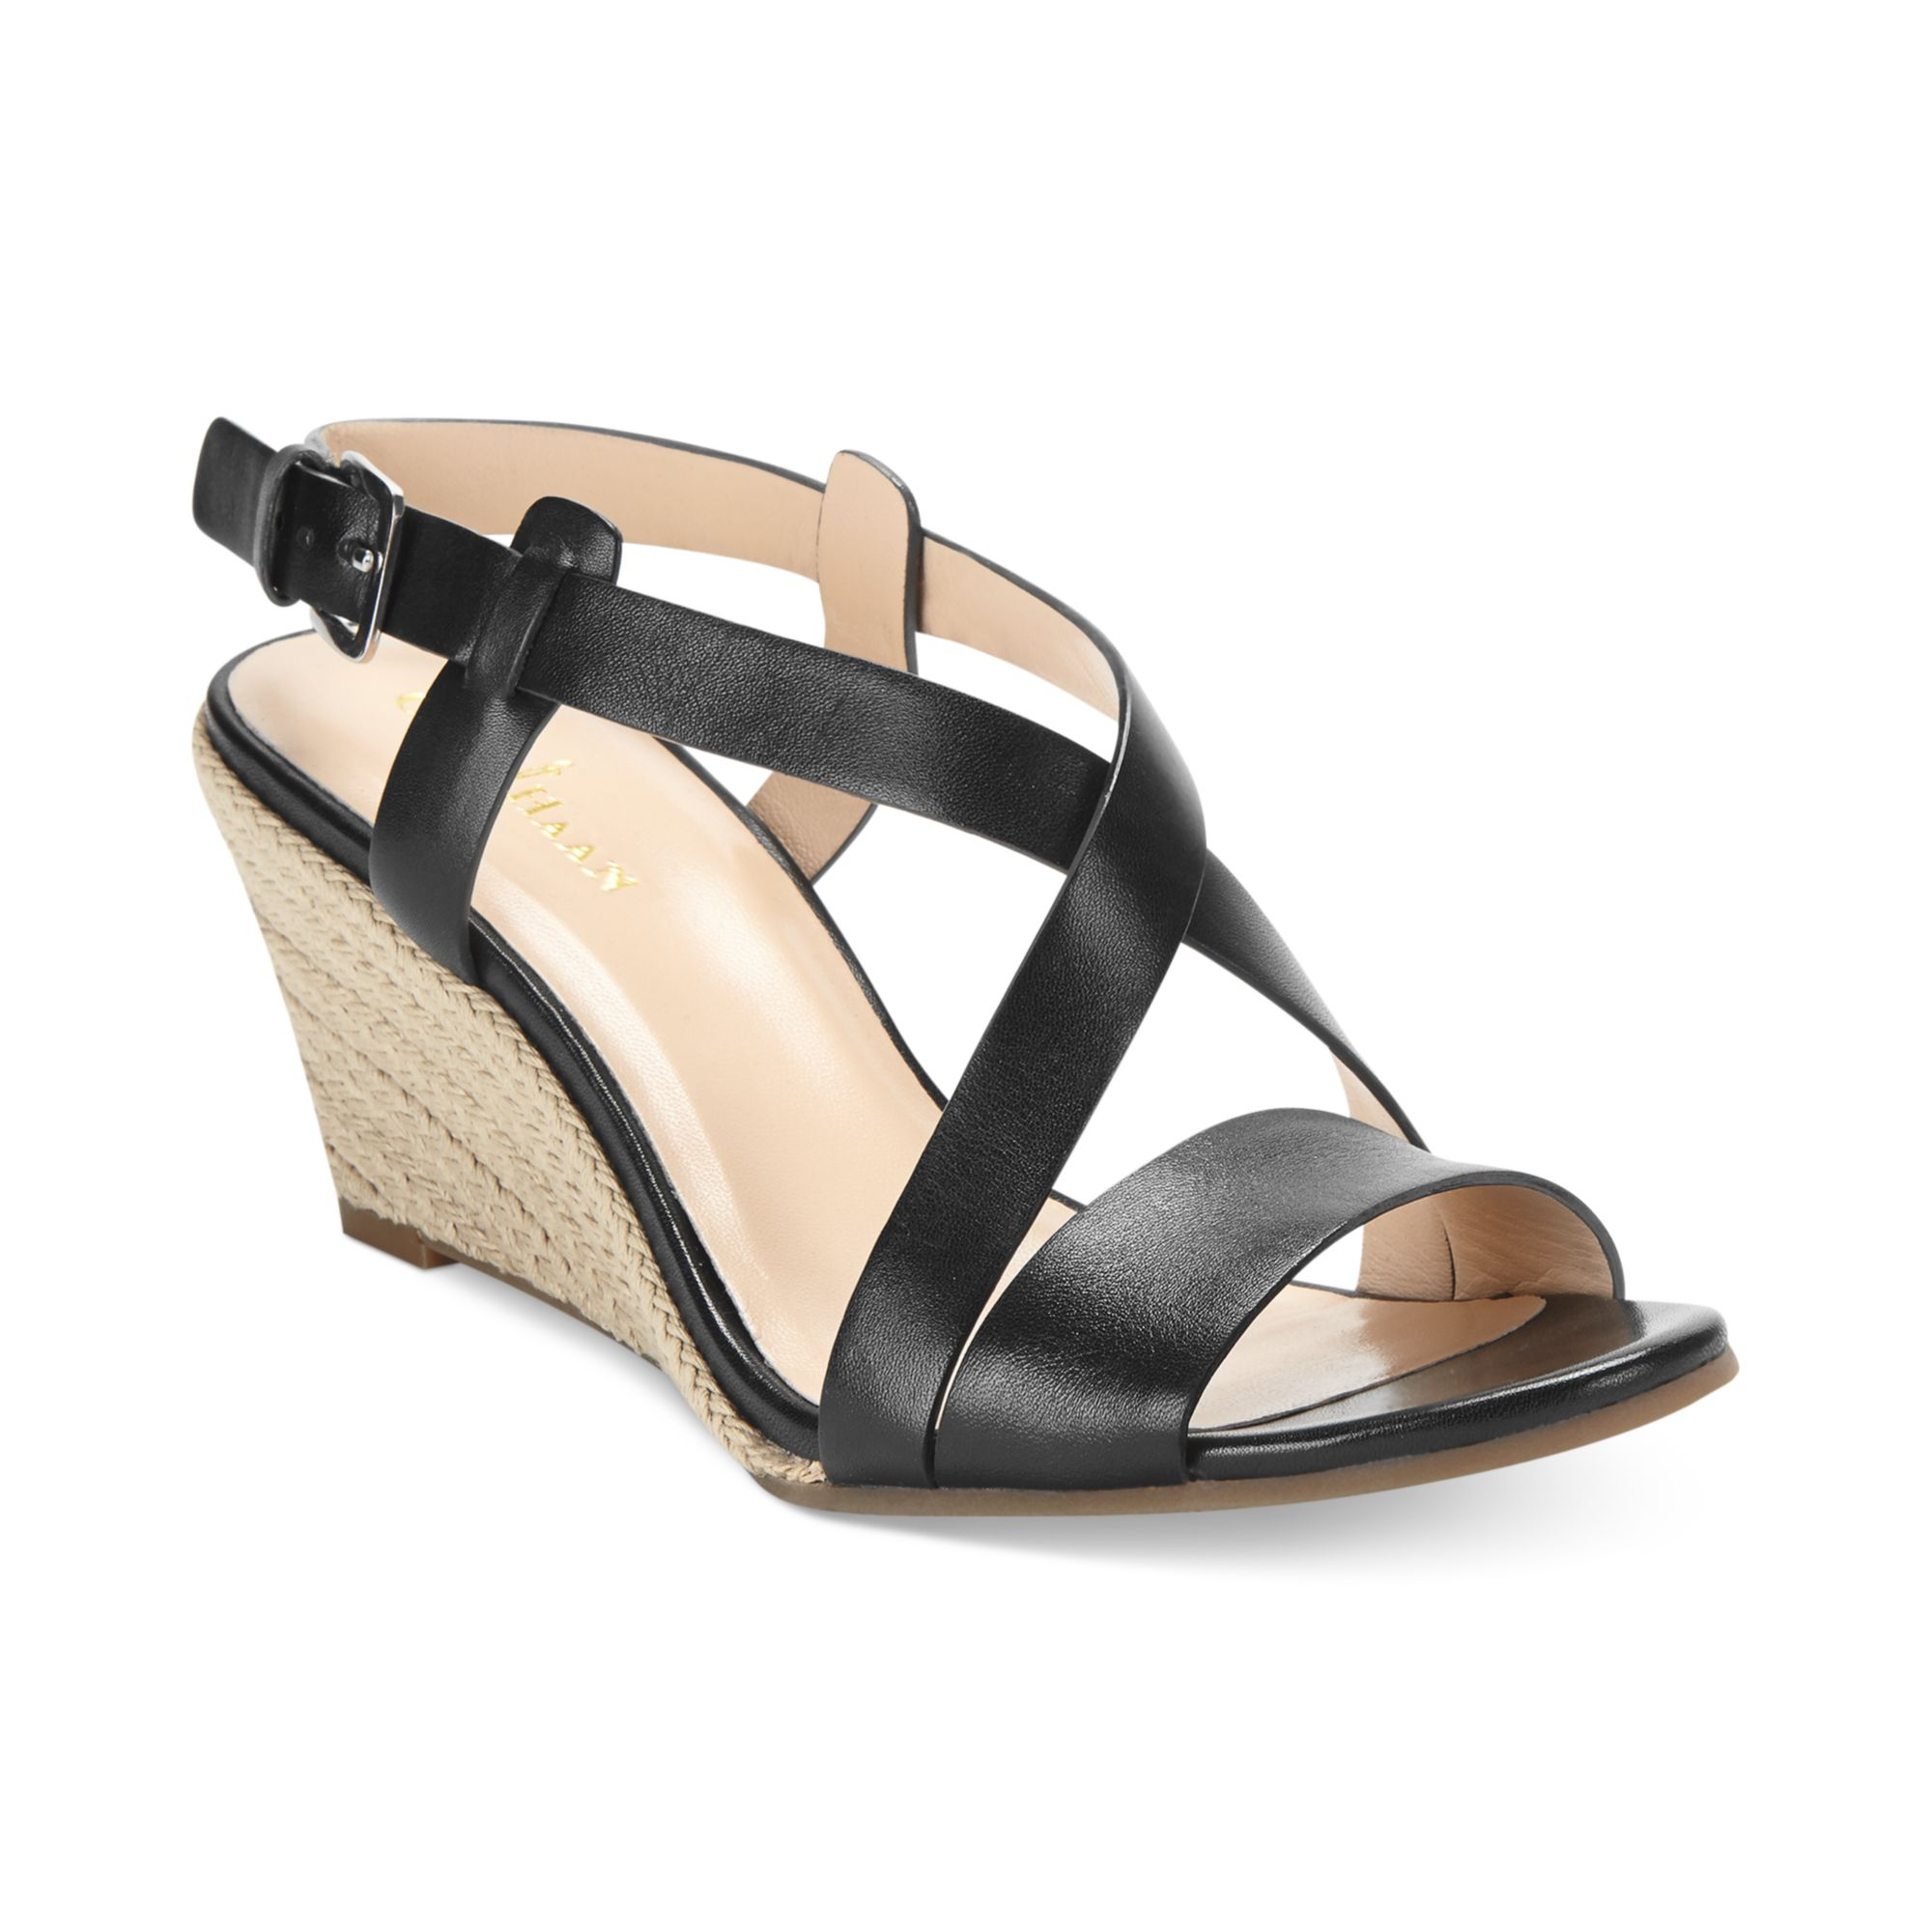 Cole Haan Shoes Womens Flats